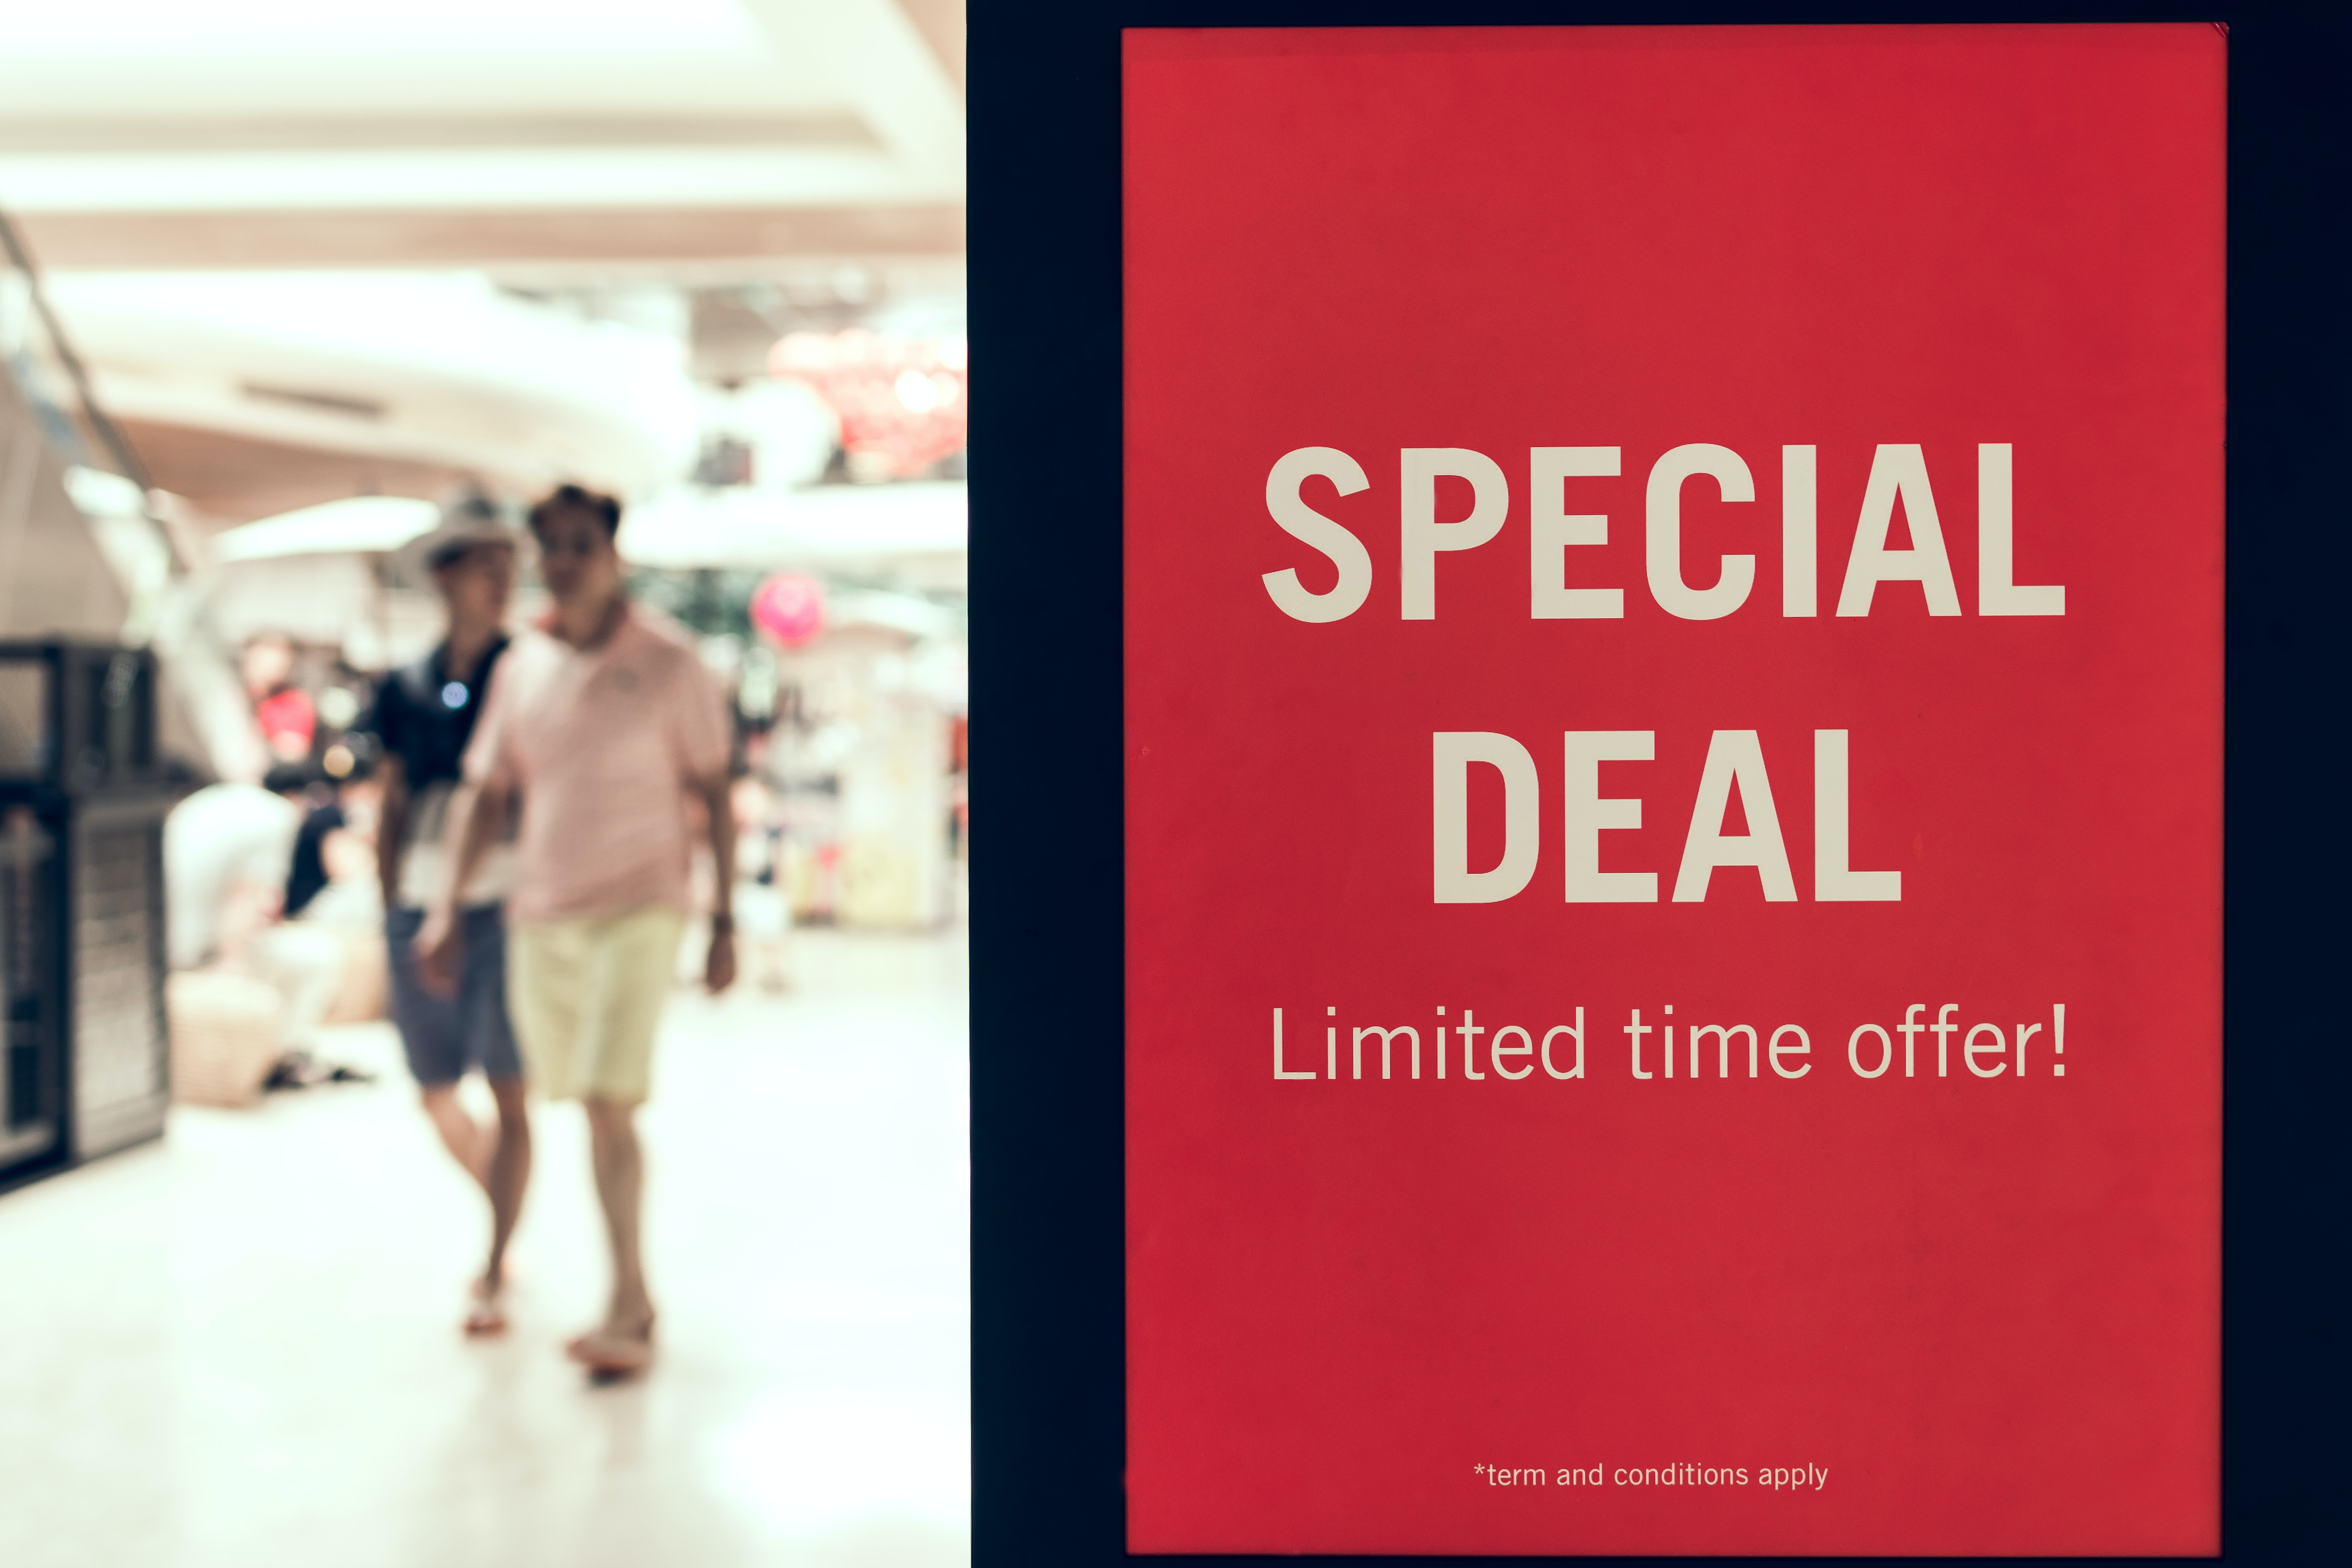 special deal sale sign in airport